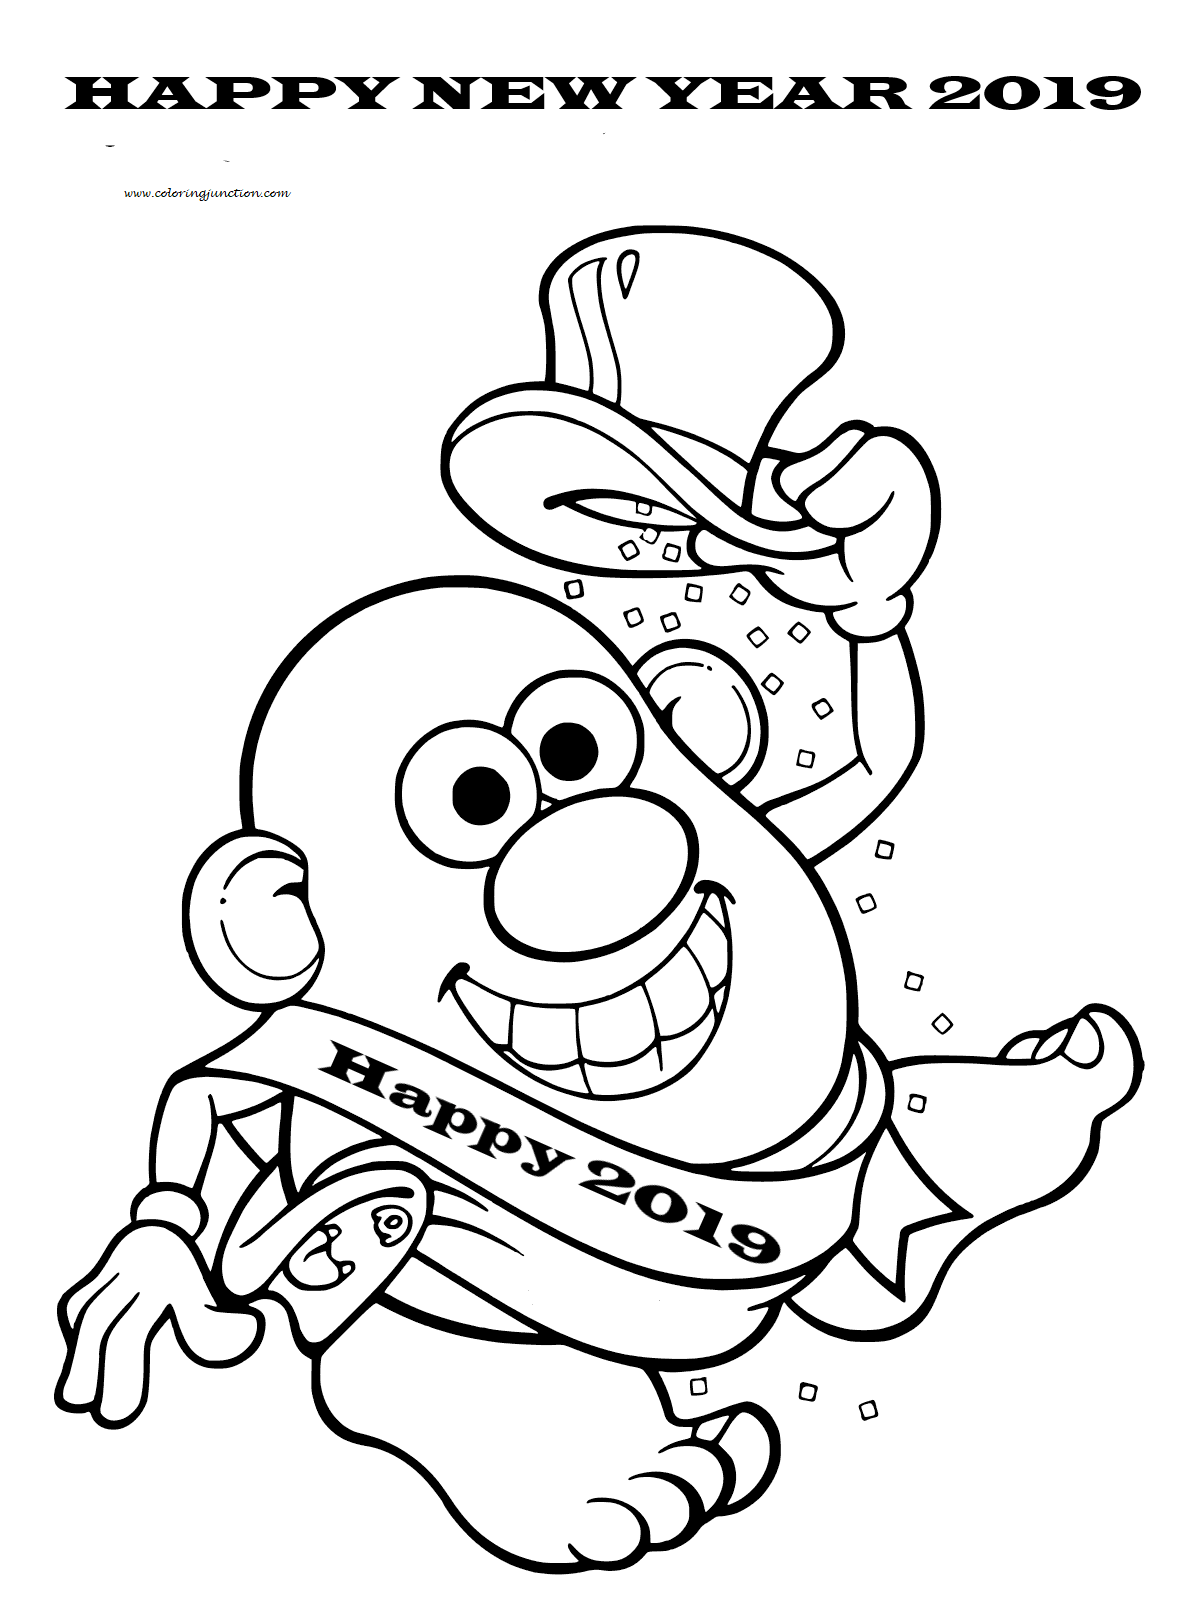 Potato Head New Year 2019 Coloring Page